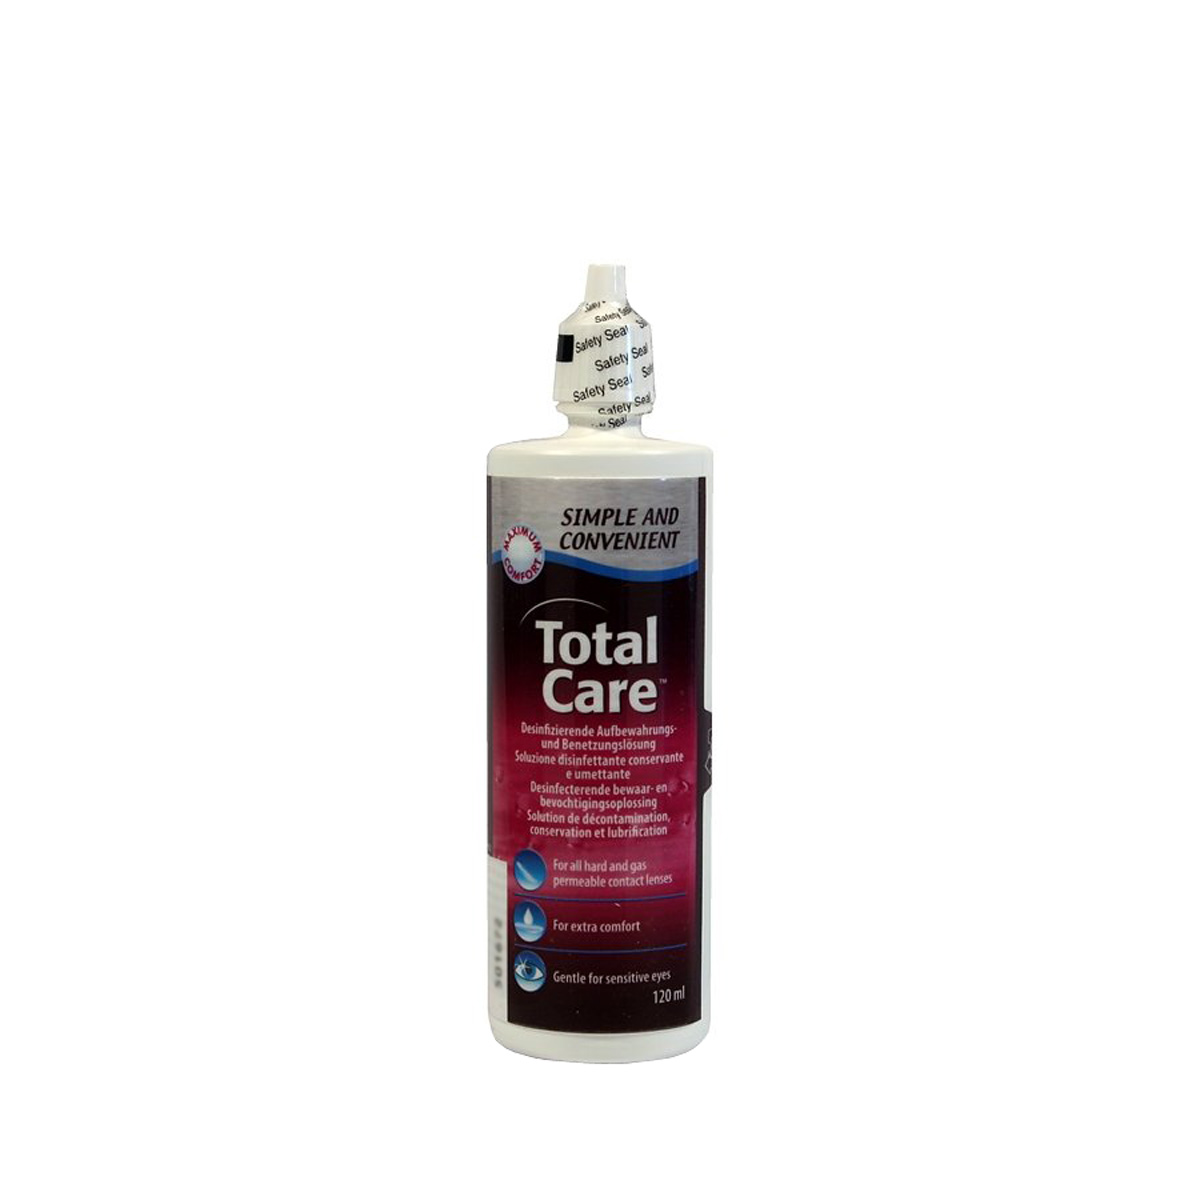 Total Care Disinfecting, Storing and Wetting solution (120ml)